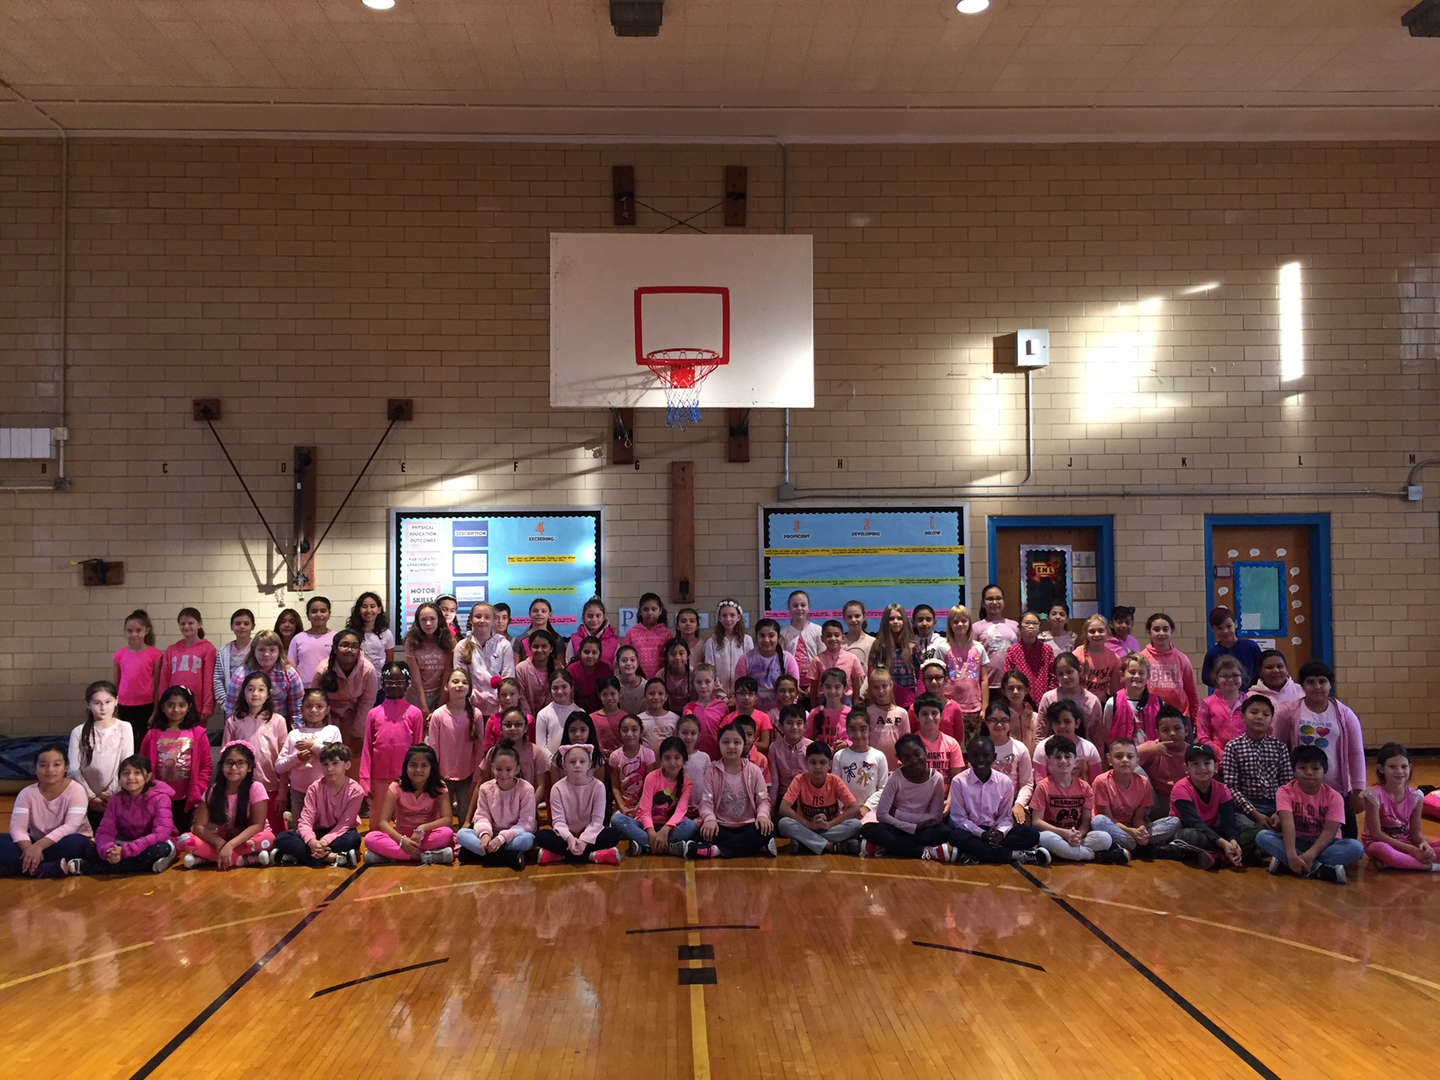 Students wear pink for breast cancer awareness.